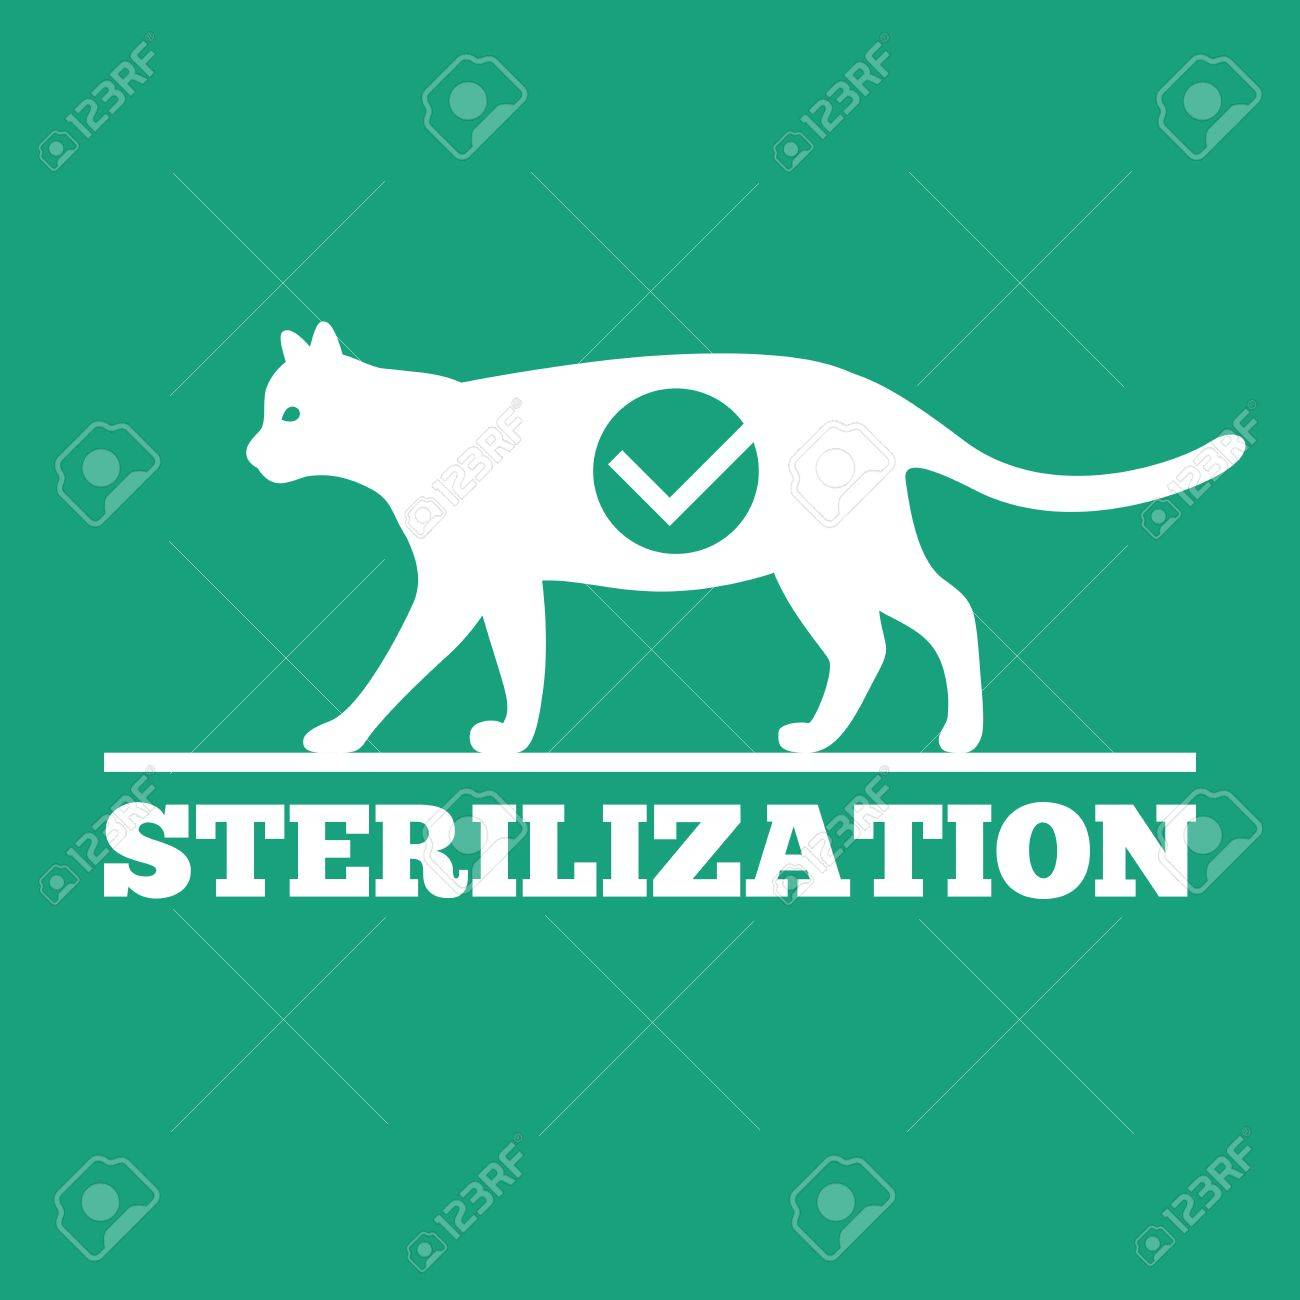 Vector logo of castration and sterilization of cats - 70938506